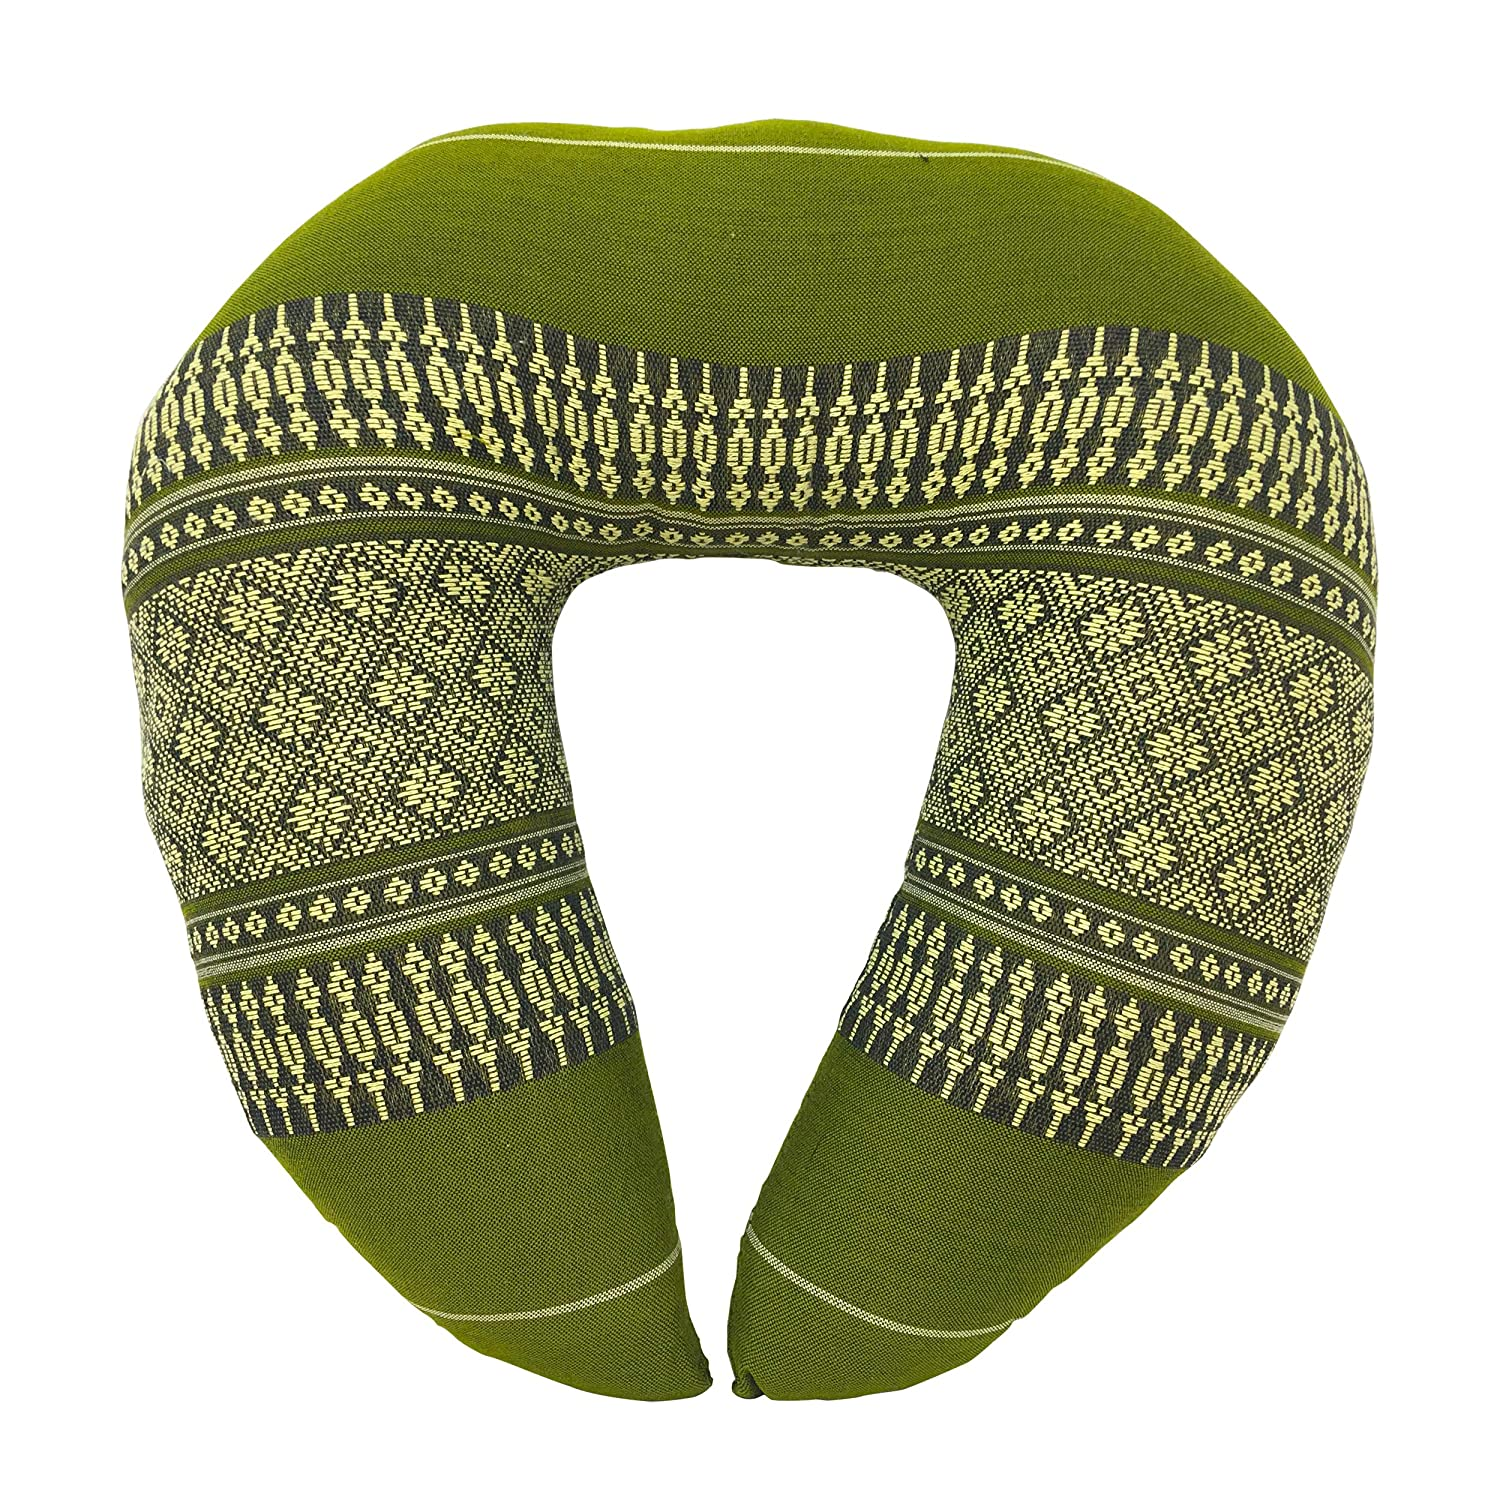 Laeto Home /& Living Kapok Firm Neck Cushion for Travel Green Massage or Comfort in Traditional Thai Fabric